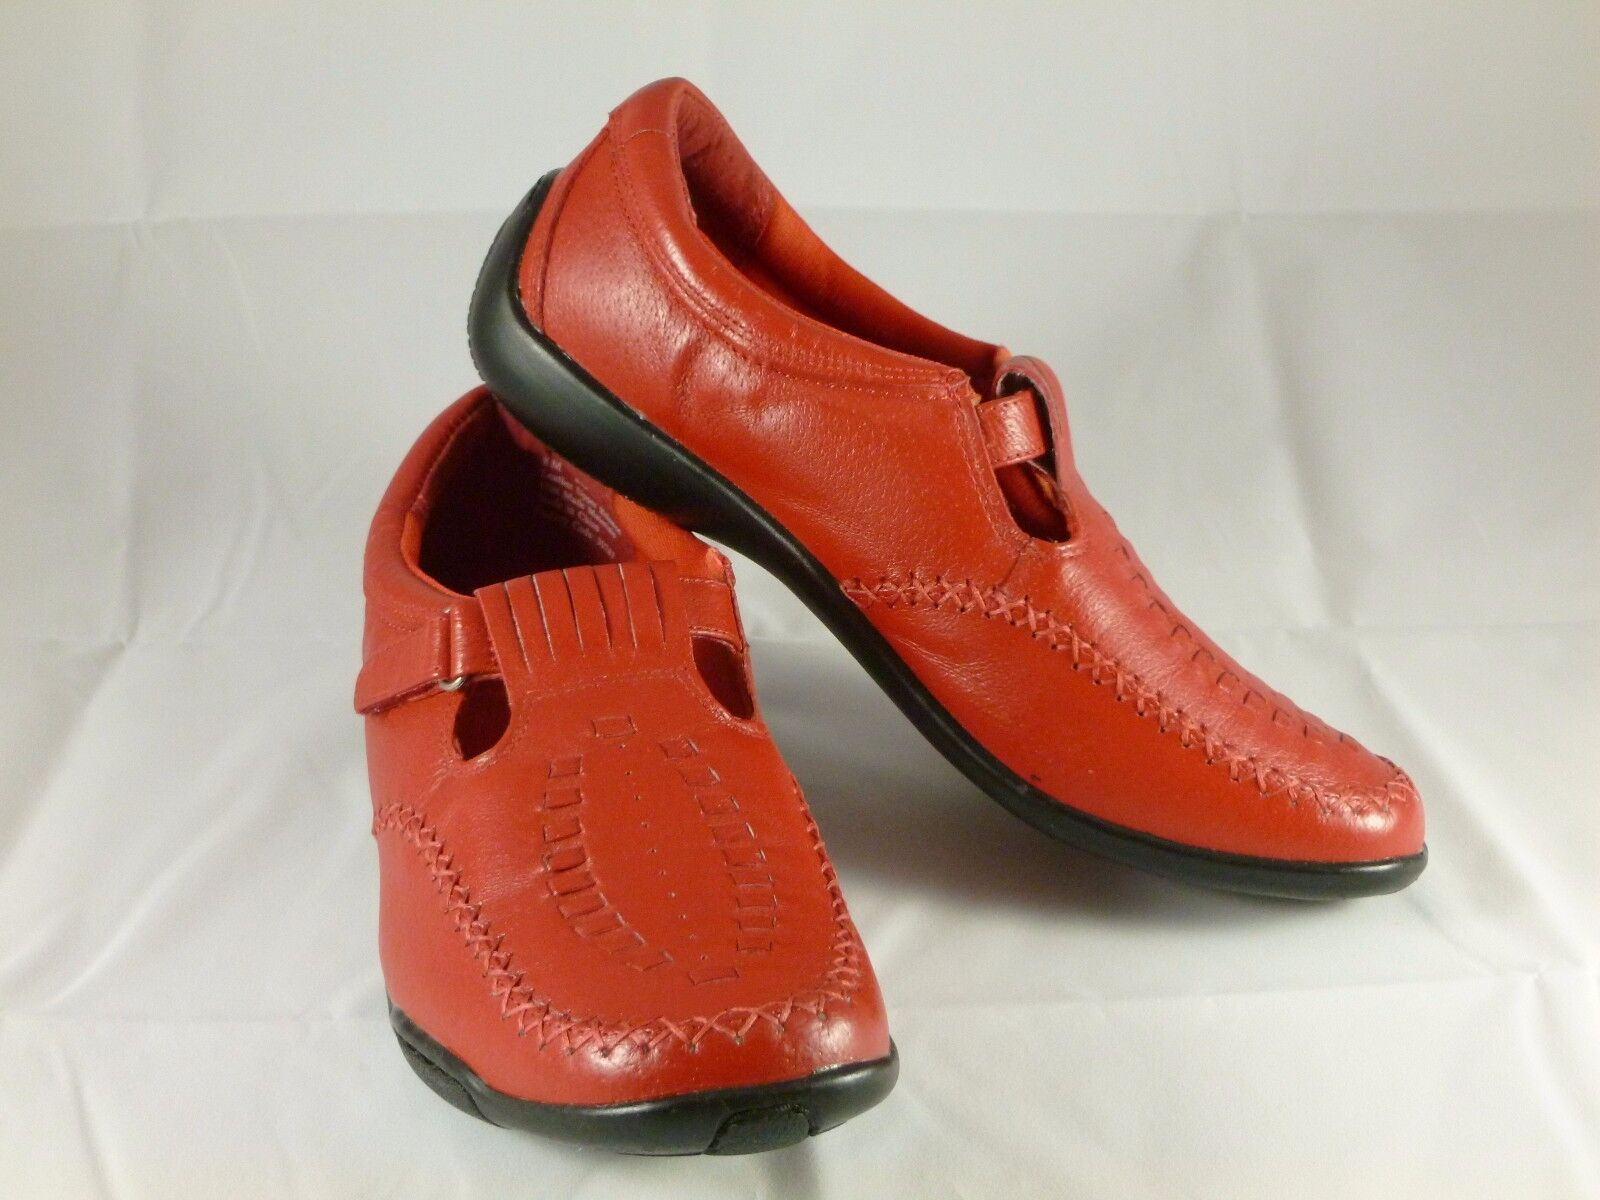 Dr. Scholl's Red Leather Upper Slip-on shoes Womens Size 8M